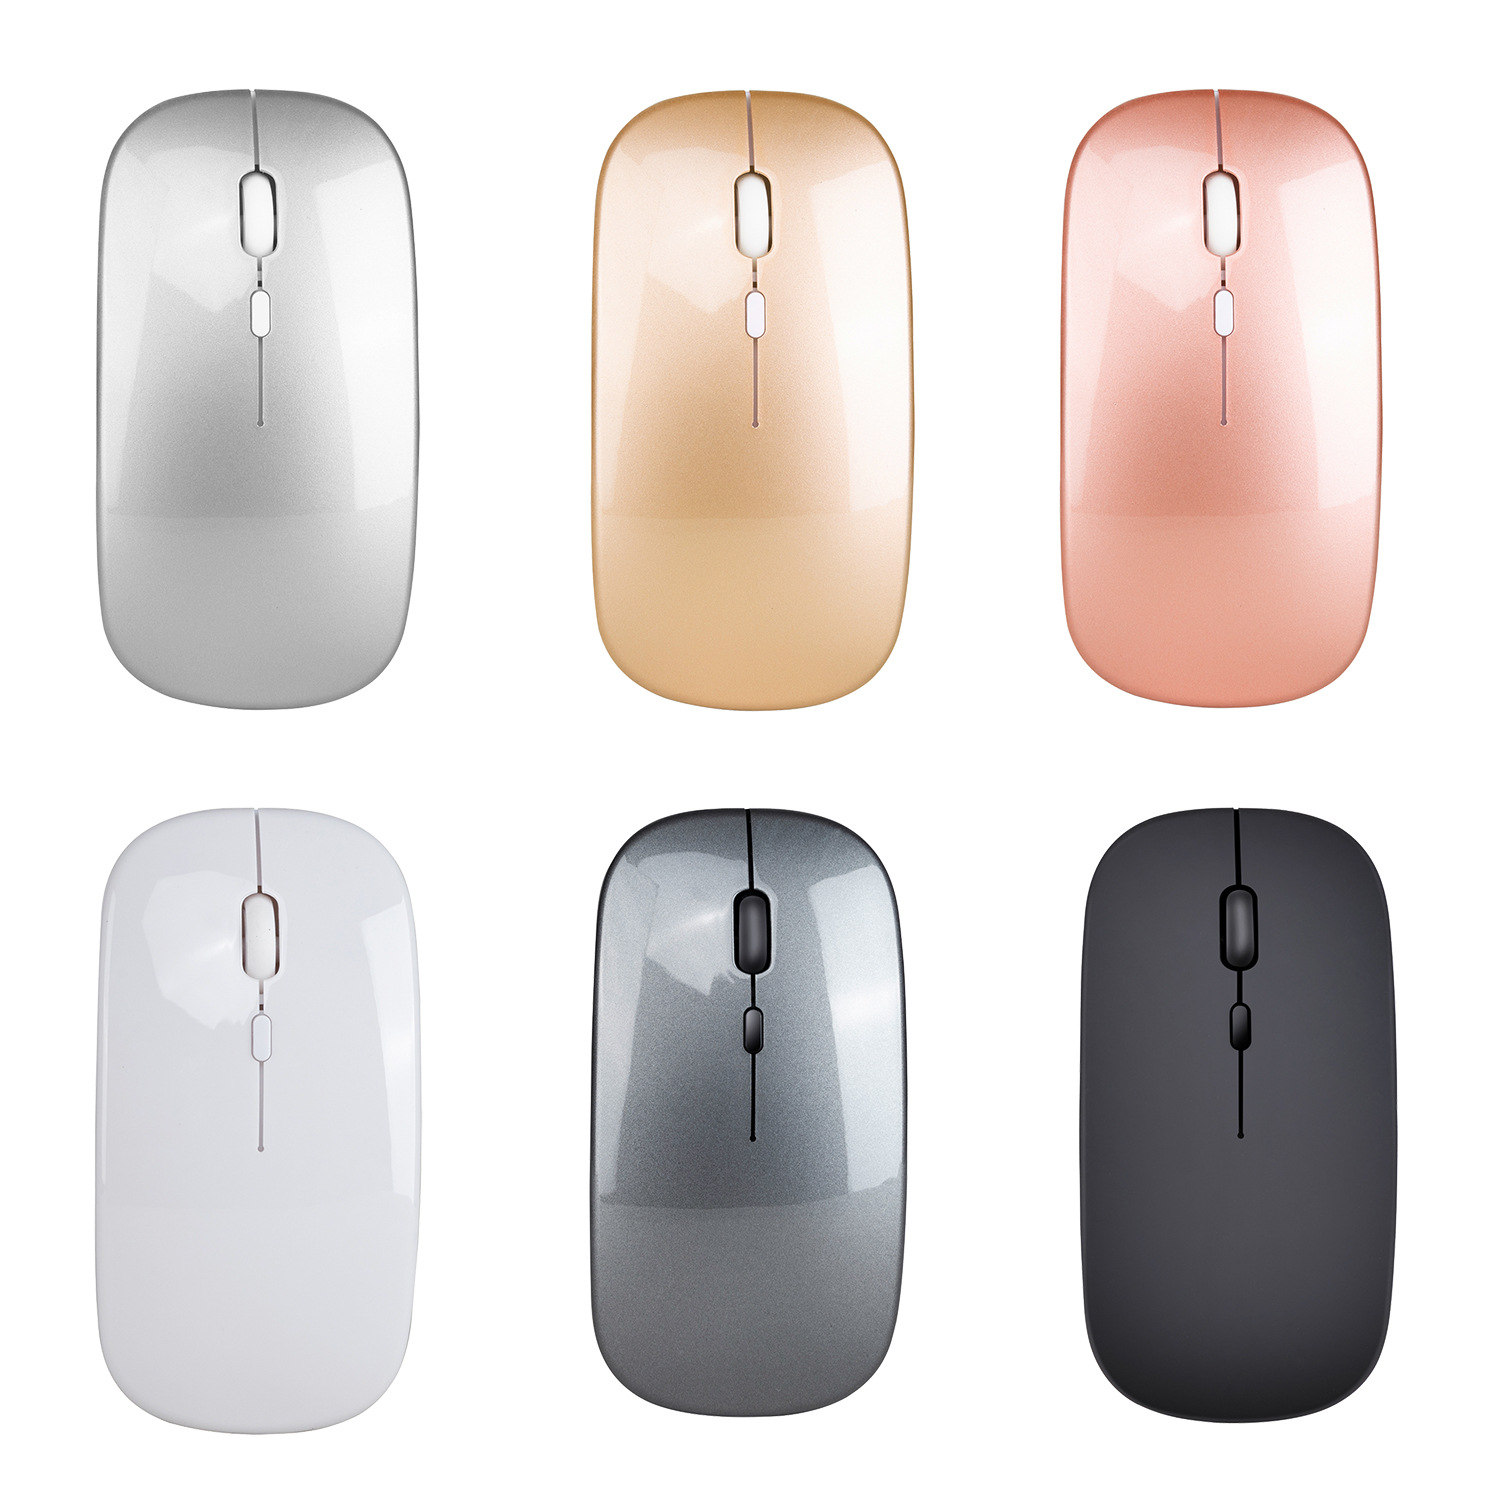 New Wireless Mouse Computer Bluetooth Mouse Silent PC Mause Rechargeable Ergonomic Mouse 2.4Ghz USB Optical Mice For Laptop PC